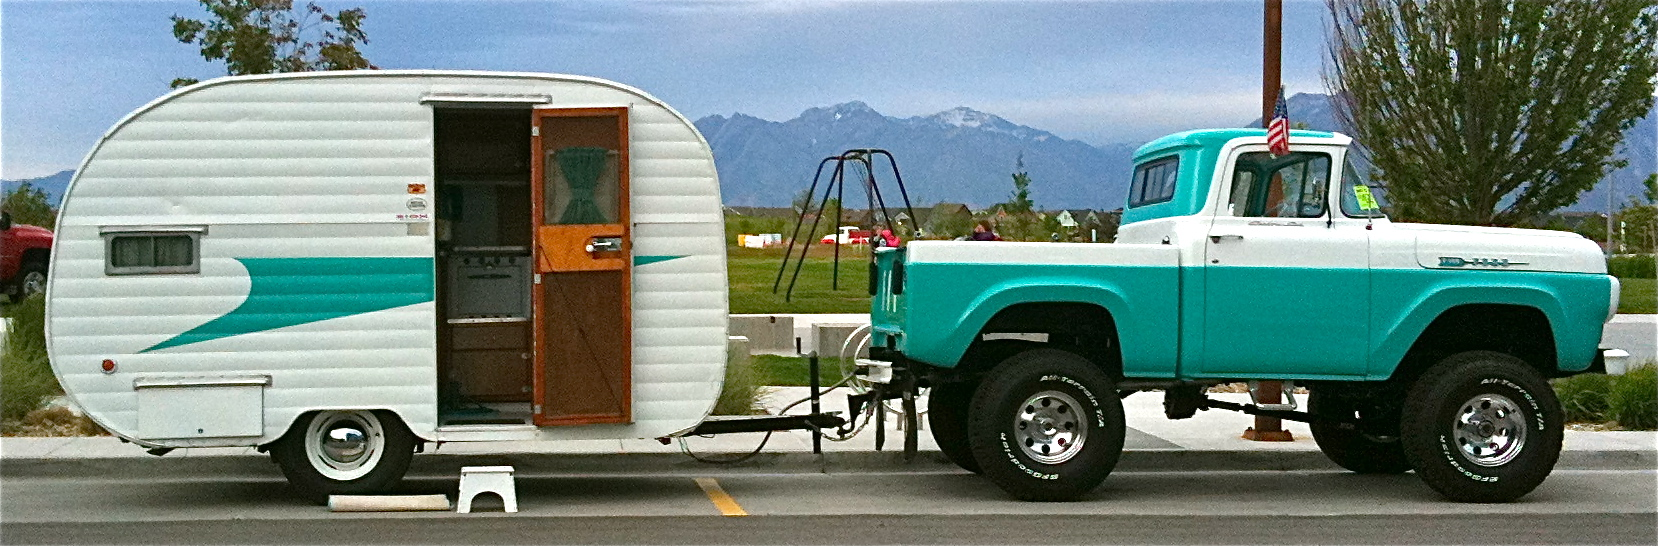 Wonderful Tips For A Quick Camper Trailer Setup  Happy Go Travel